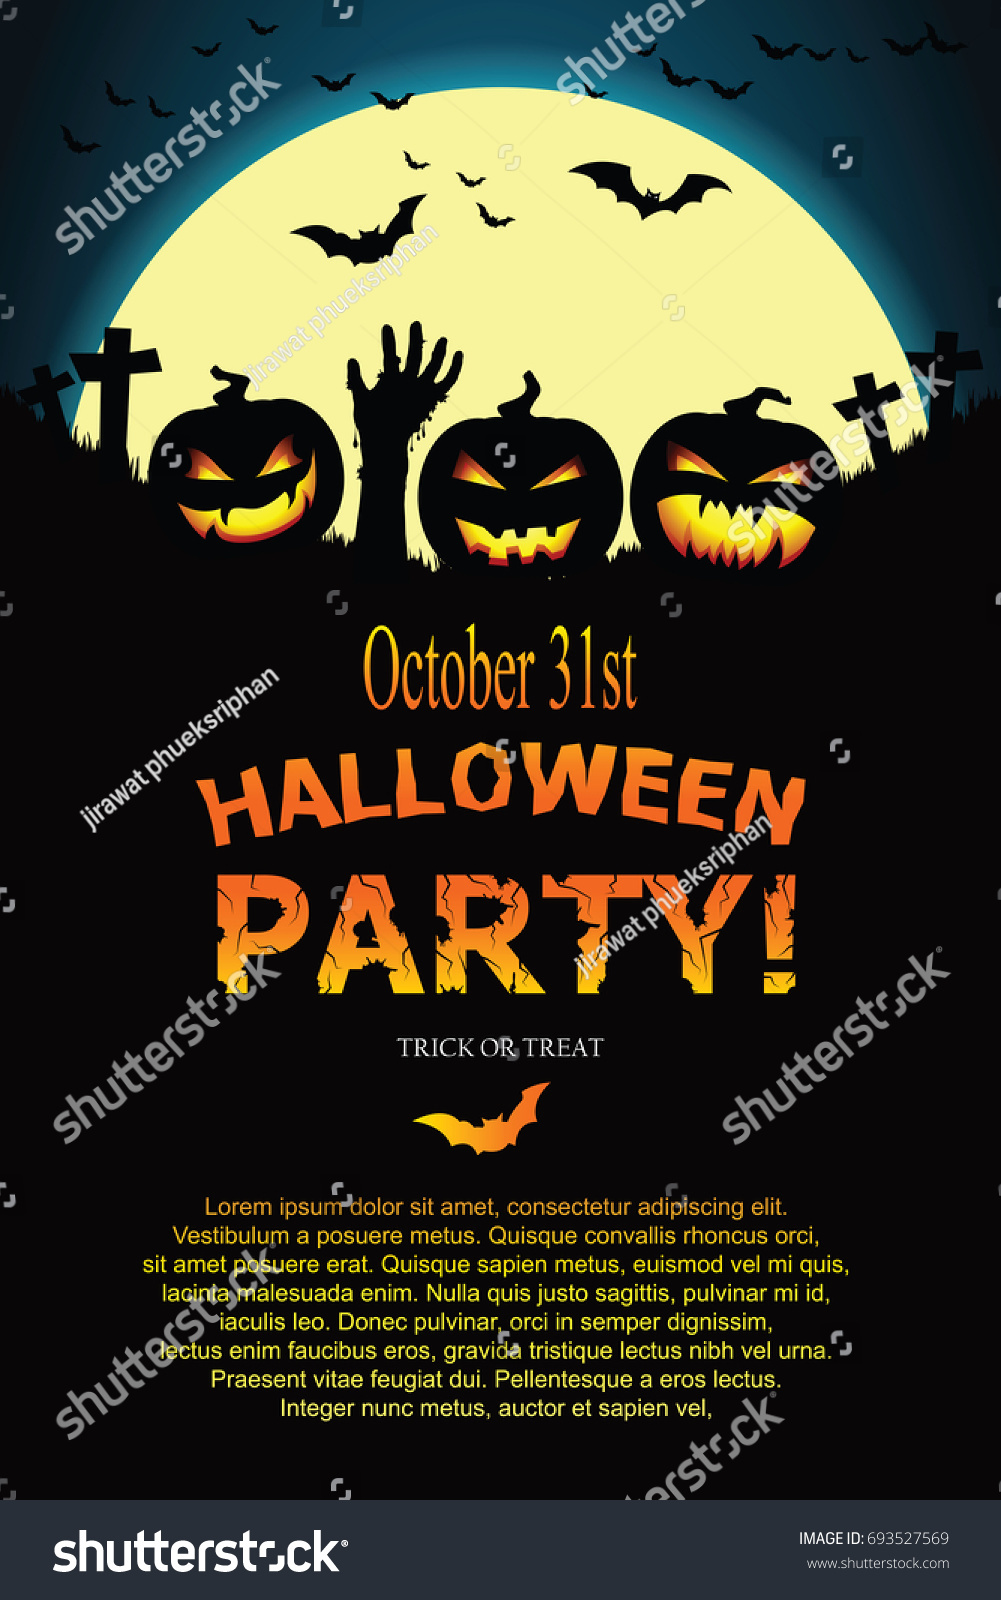 Halloween invitation vector eps 10 stock vector 693527569 shutterstock halloween invitation vector eps 10 stopboris Image collections